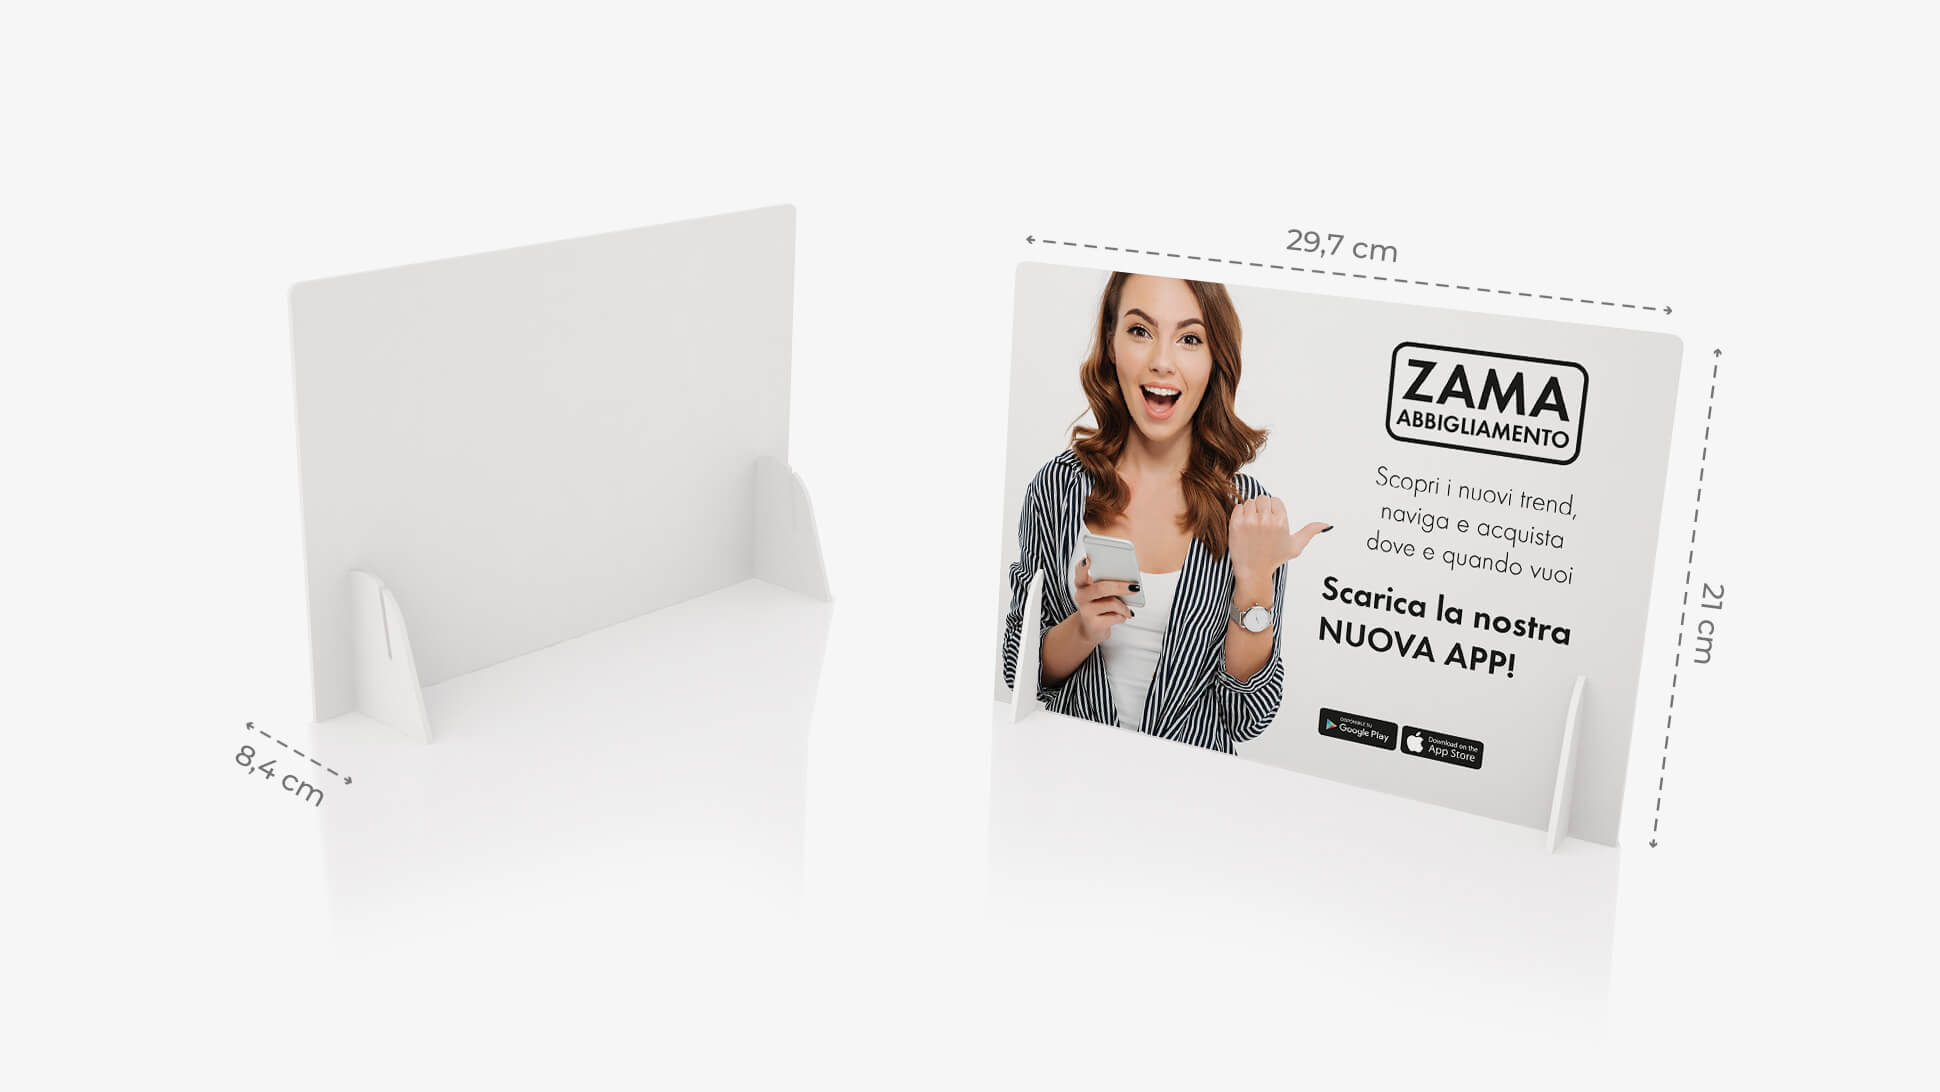 Display pvc bianco A4 orizzontale con grafica | tictac.it